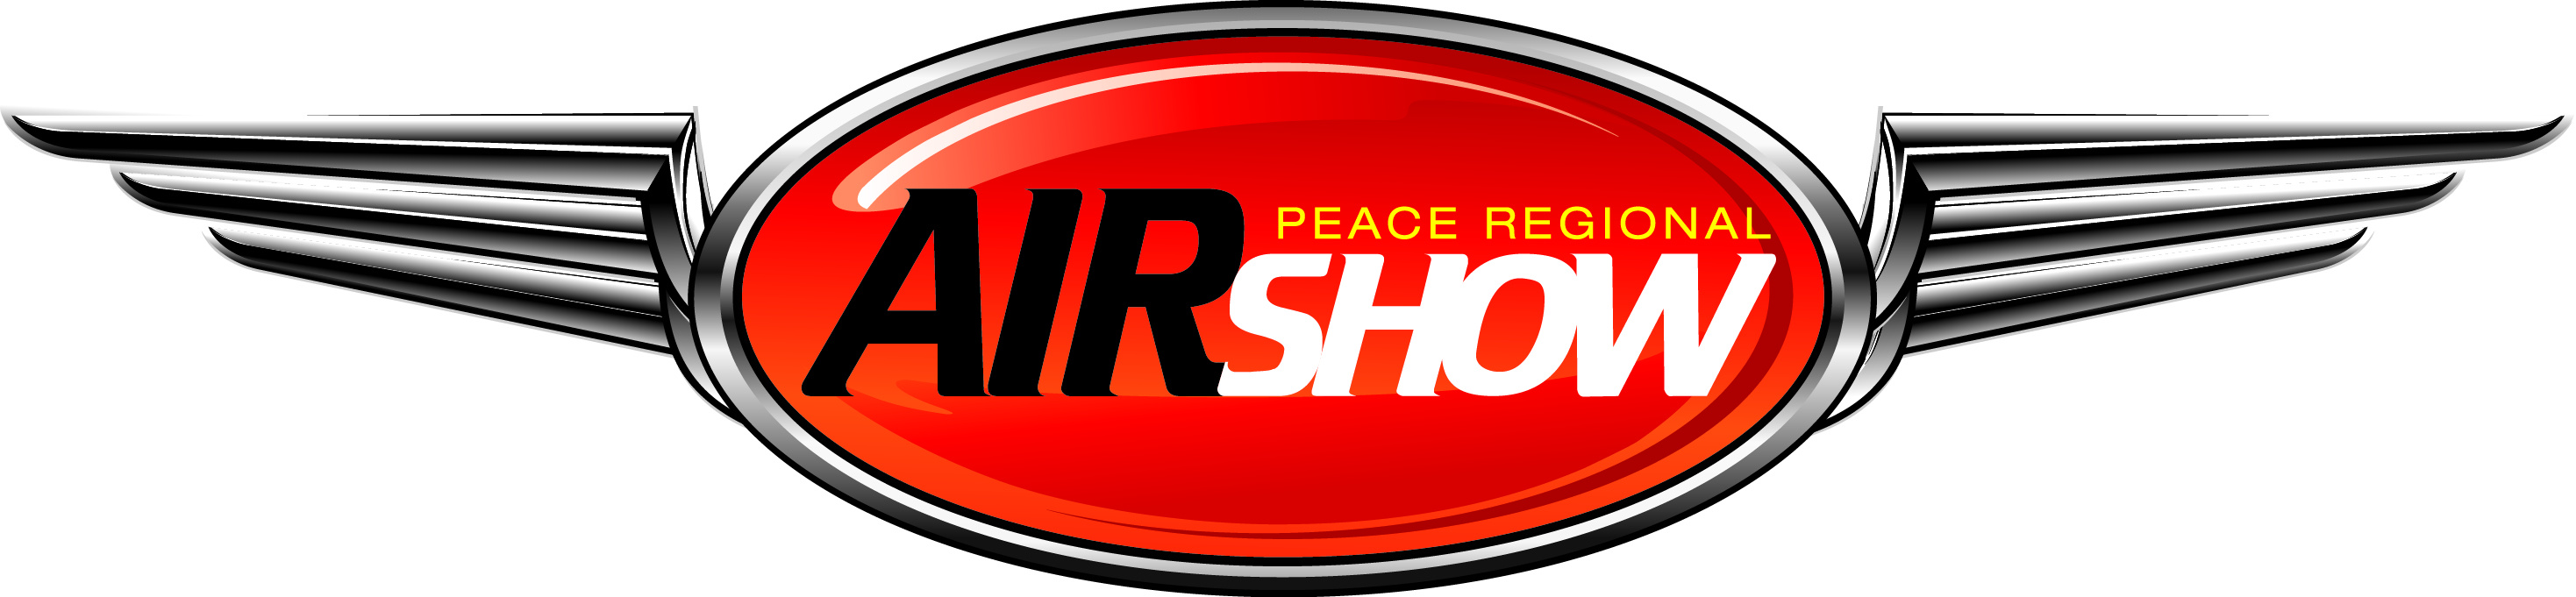 Peace Regional Air Show Logo (2)